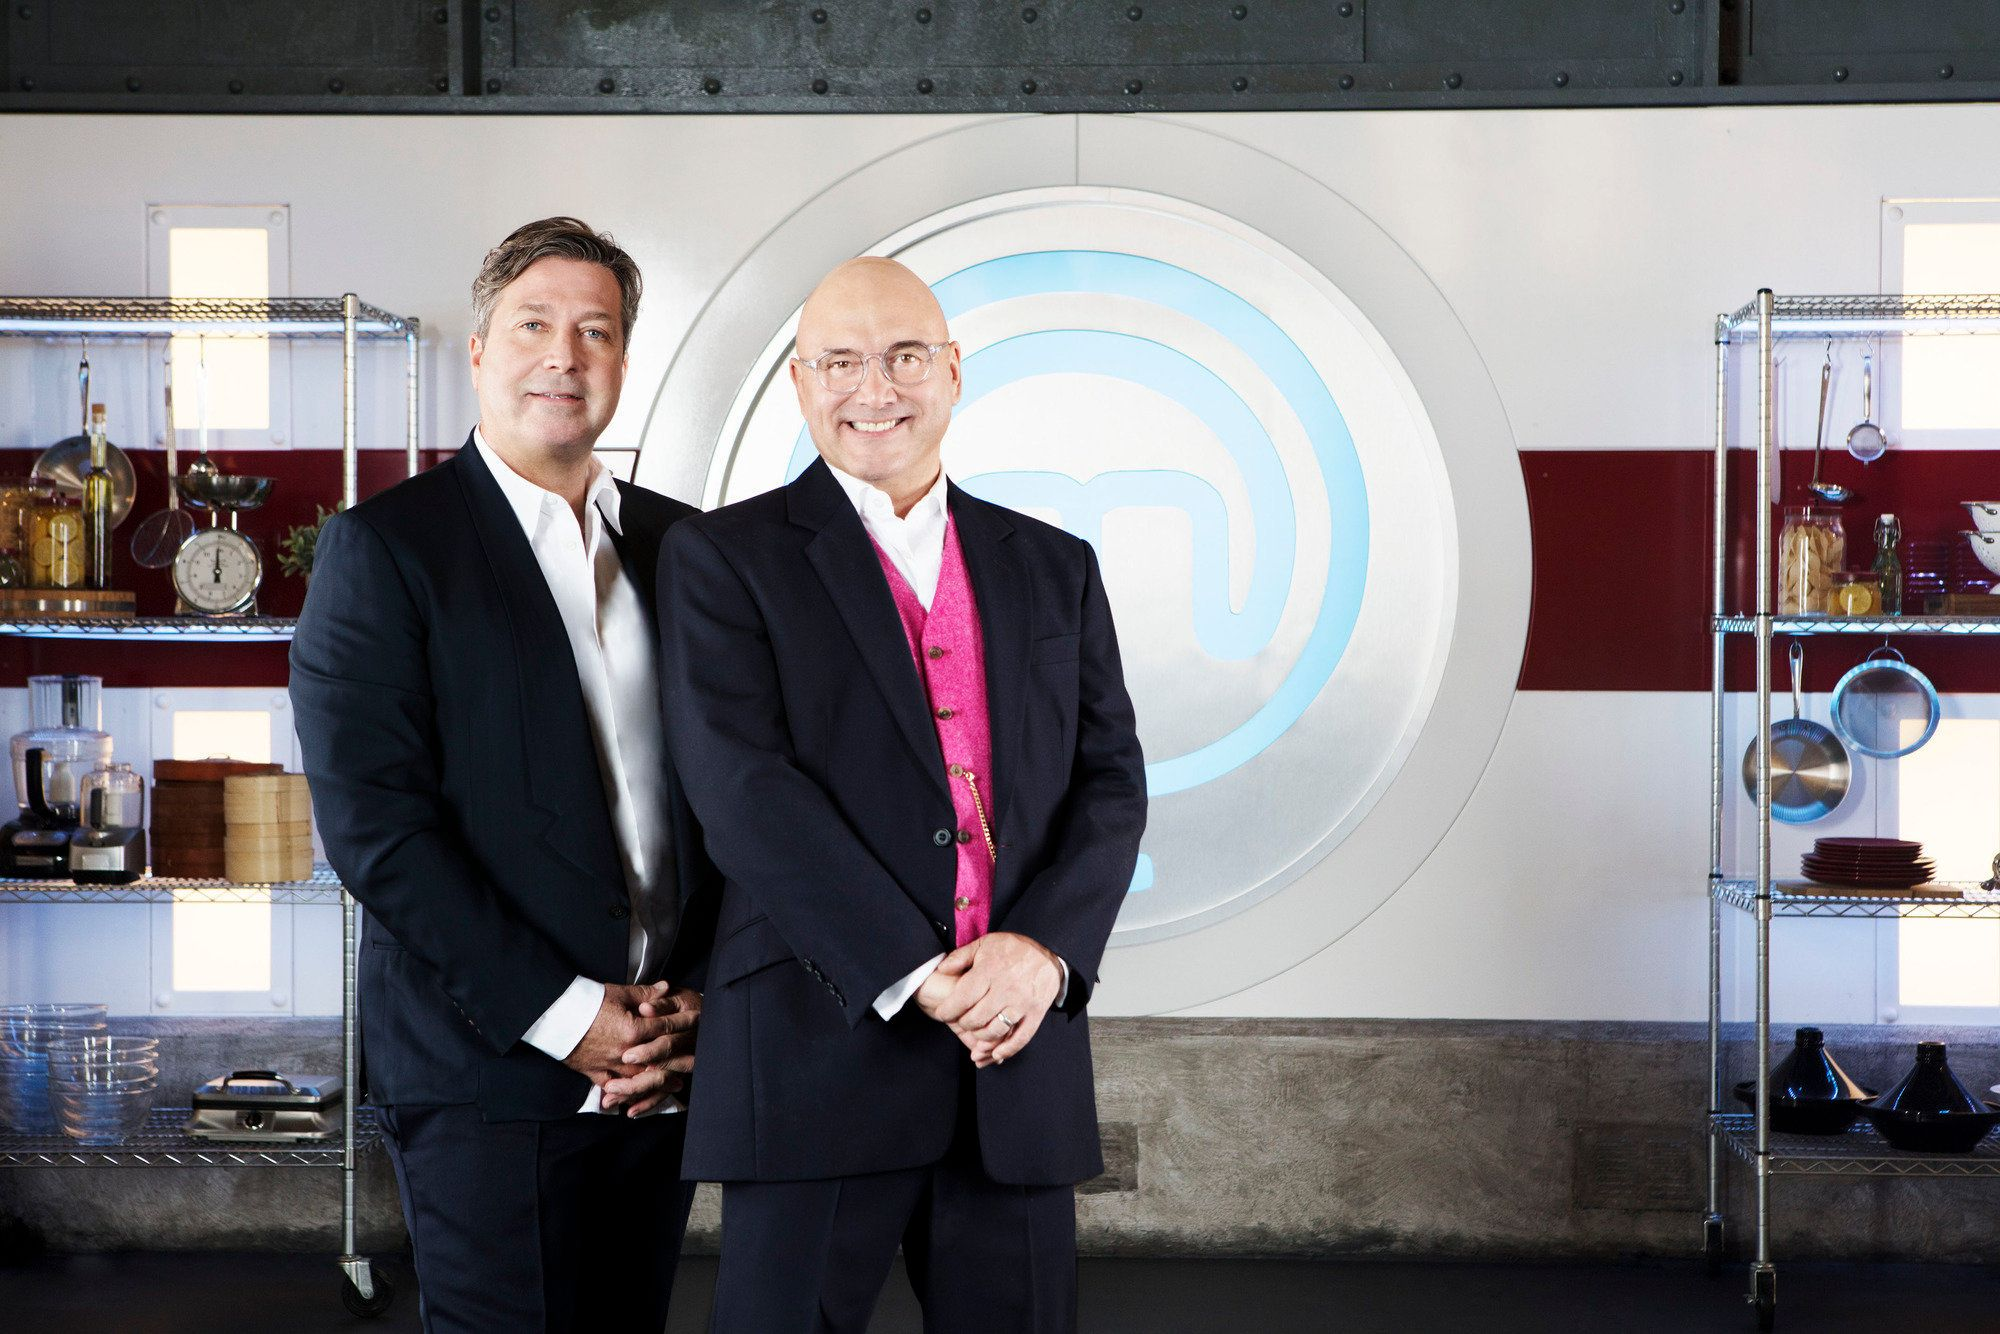 John Torode and Gregg Wallace have worked together on MasterChef since